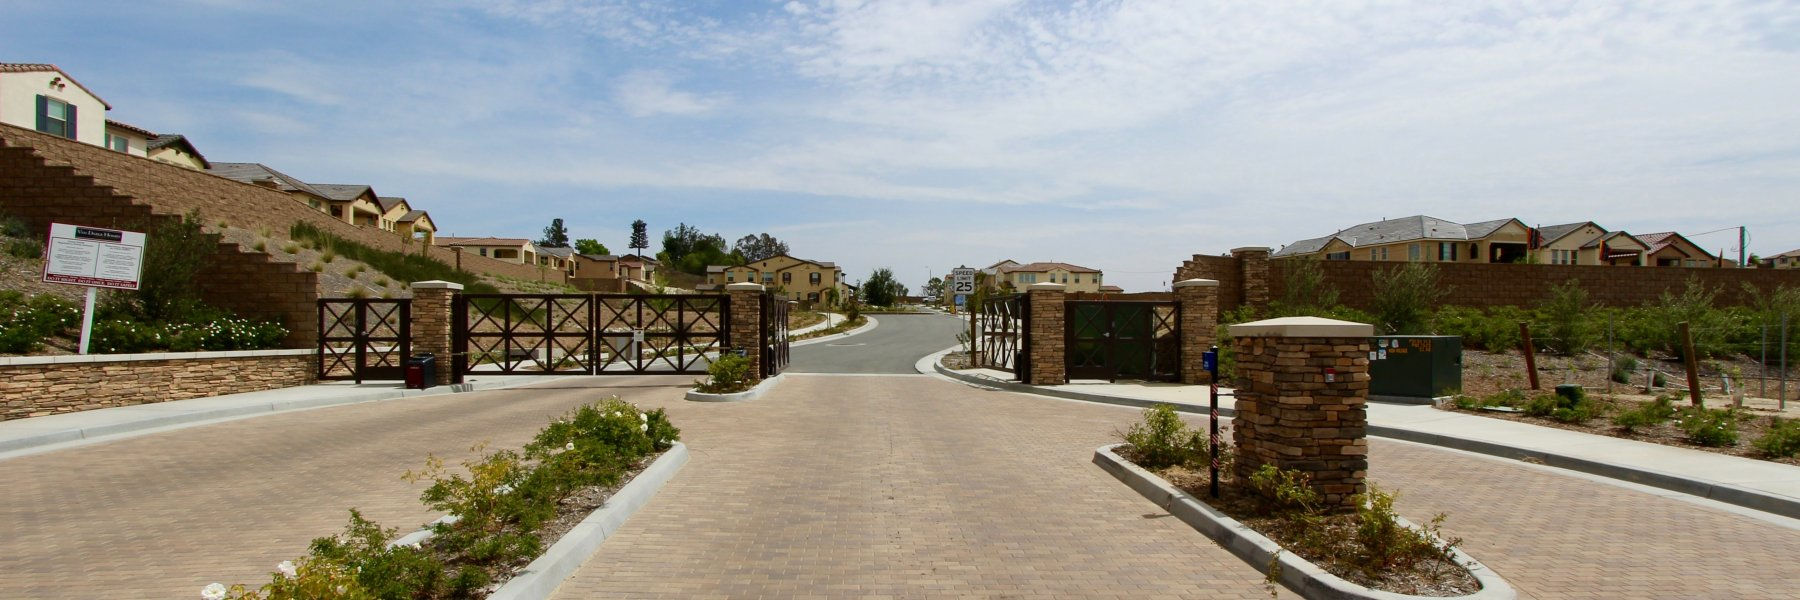 The Vineyard by Van Daele is a gated community of homes in Temecula California